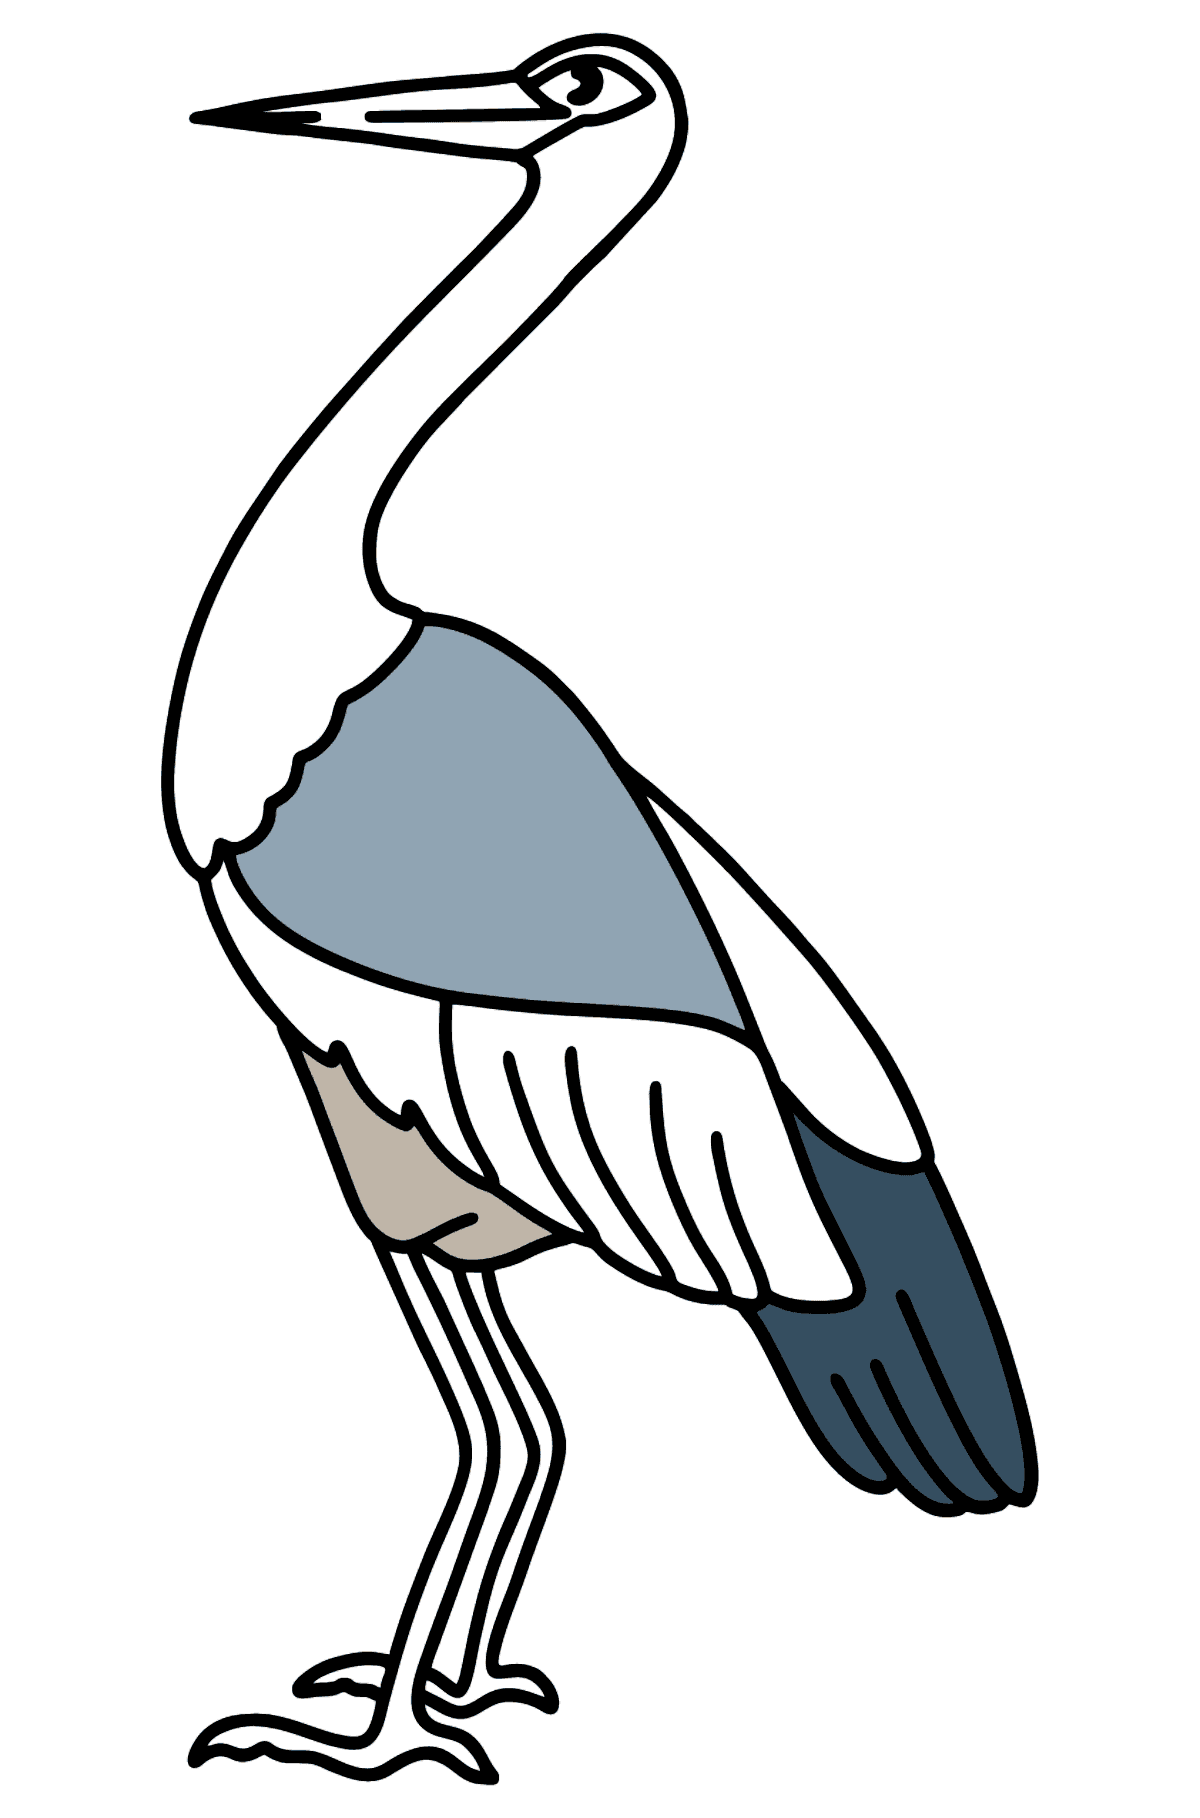 Stork coloring page - Coloring Pages for Kids